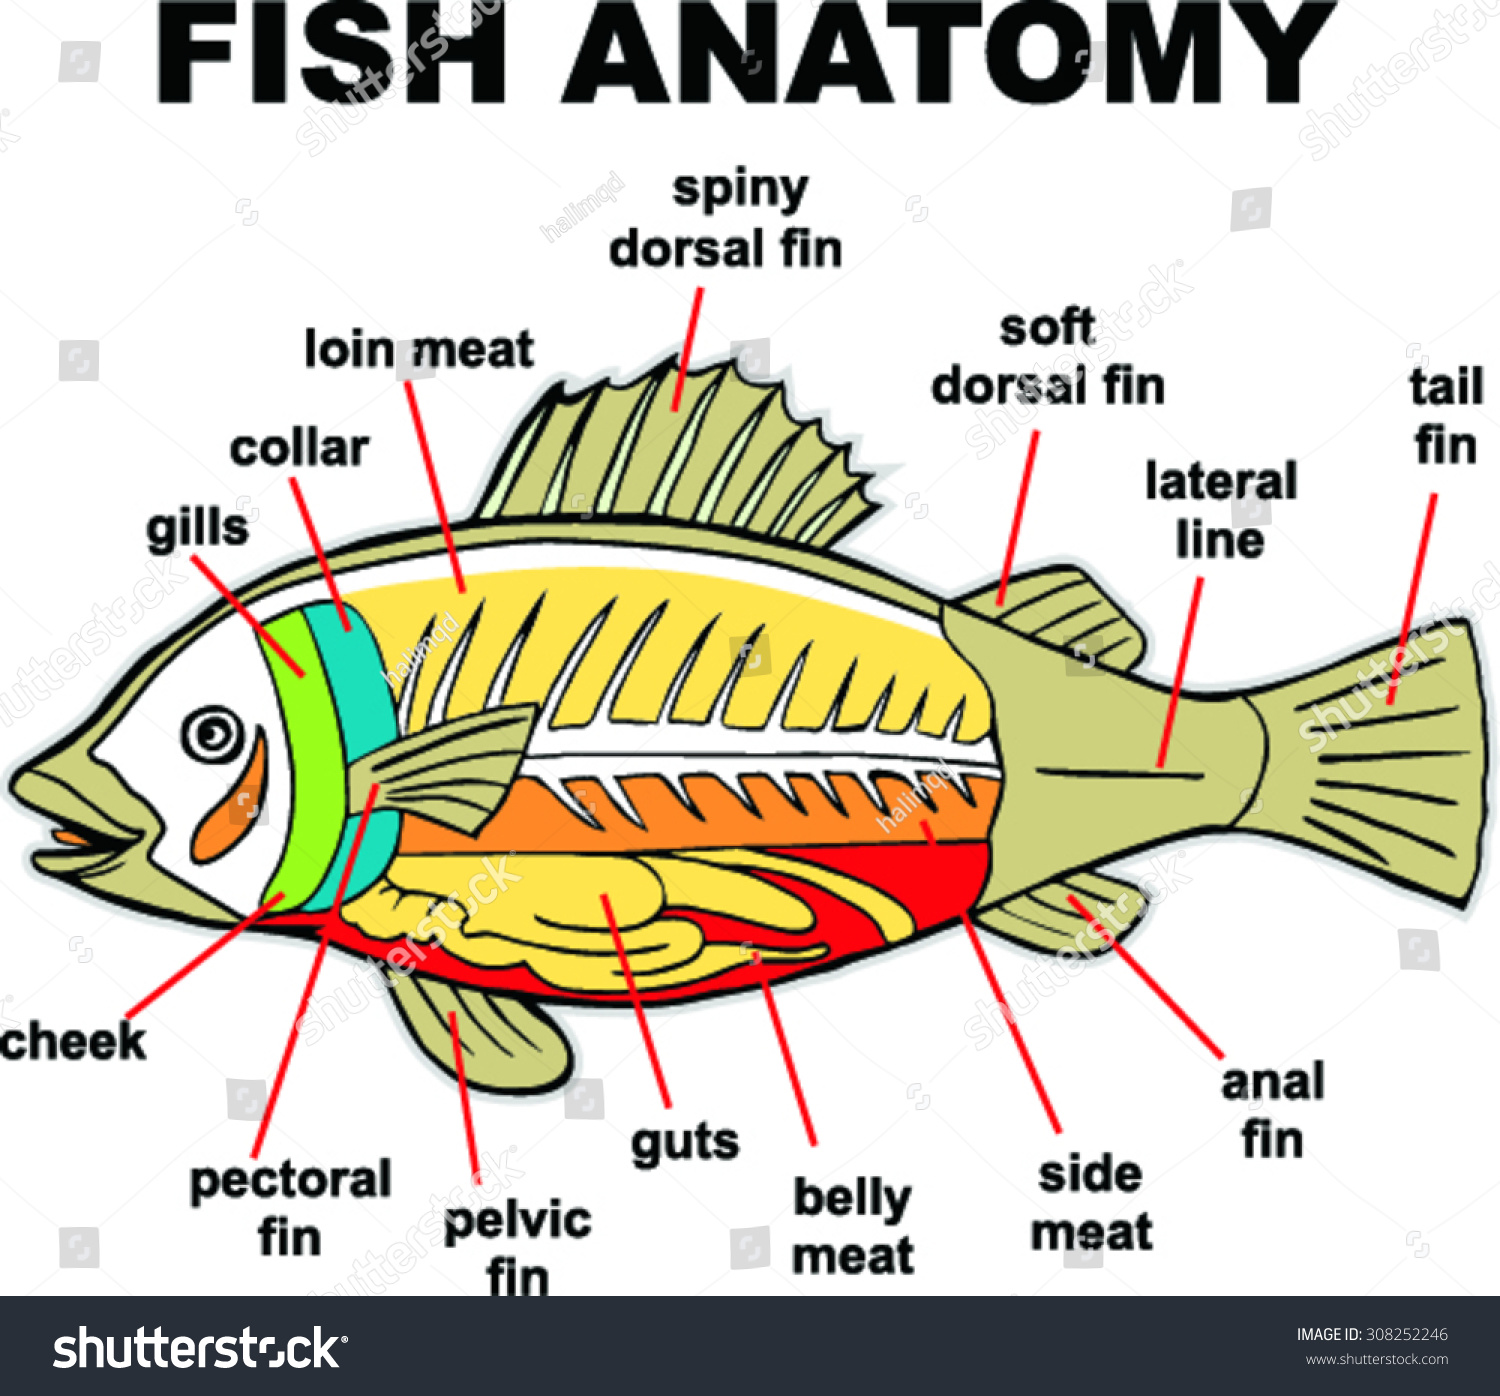 Fish Anatomy Vector Illustration Stock Vector HD (Royalty Free ...